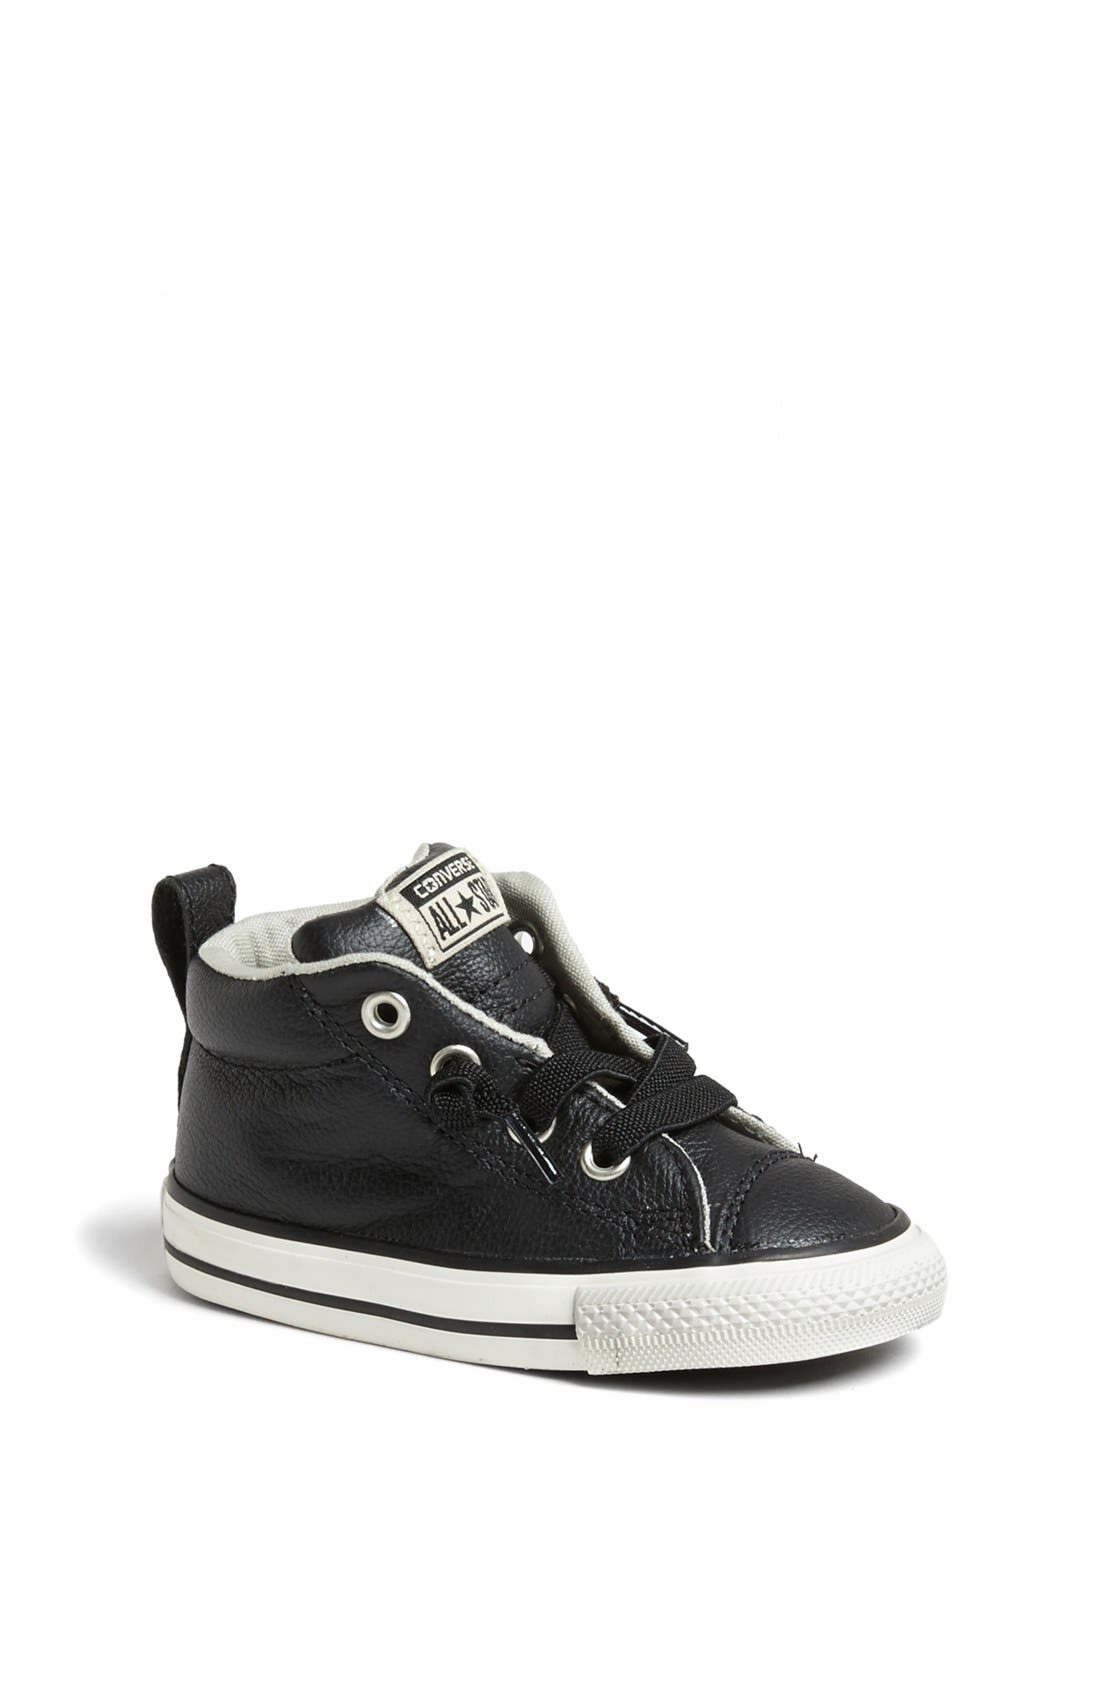 Chuck Taylor<sup>®</sup> All Star<sup>®</sup> 'CT AS Street' Leather Slip-On Sneaker,                             Main thumbnail 1, color,                             001